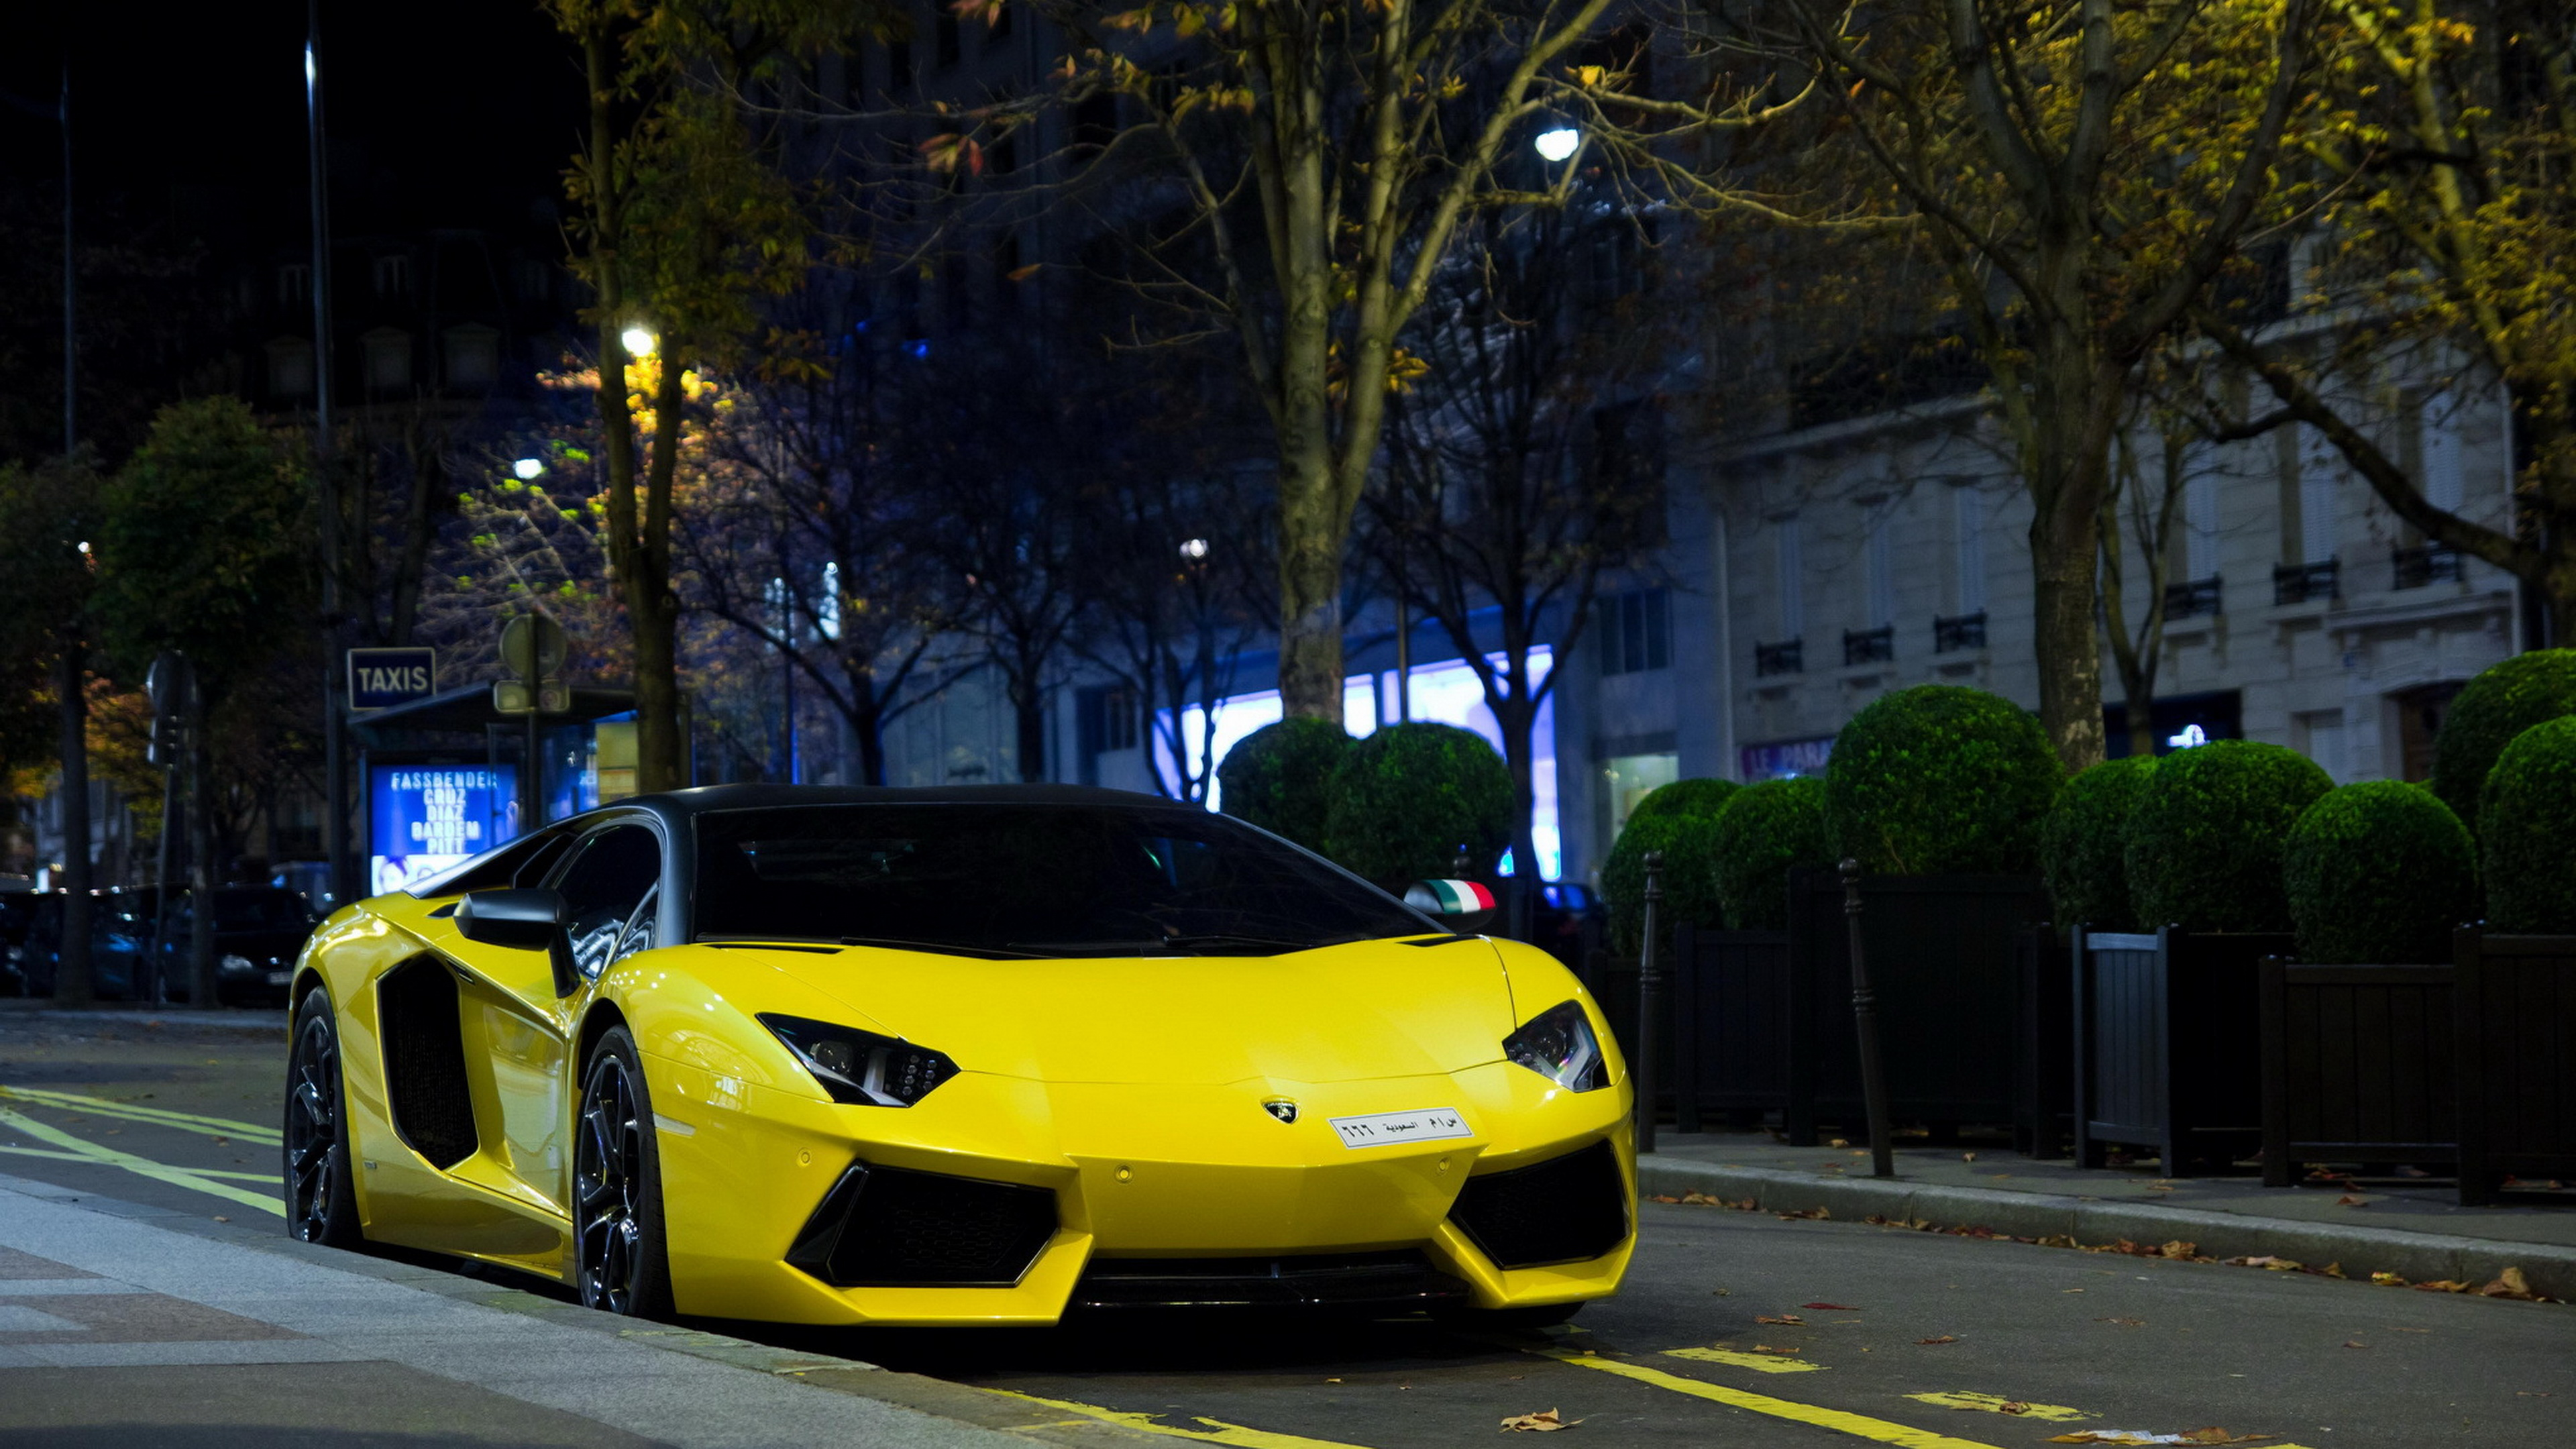 2015 Lamborghini Aventador Black Luxury Automotive | Lamborghini ...